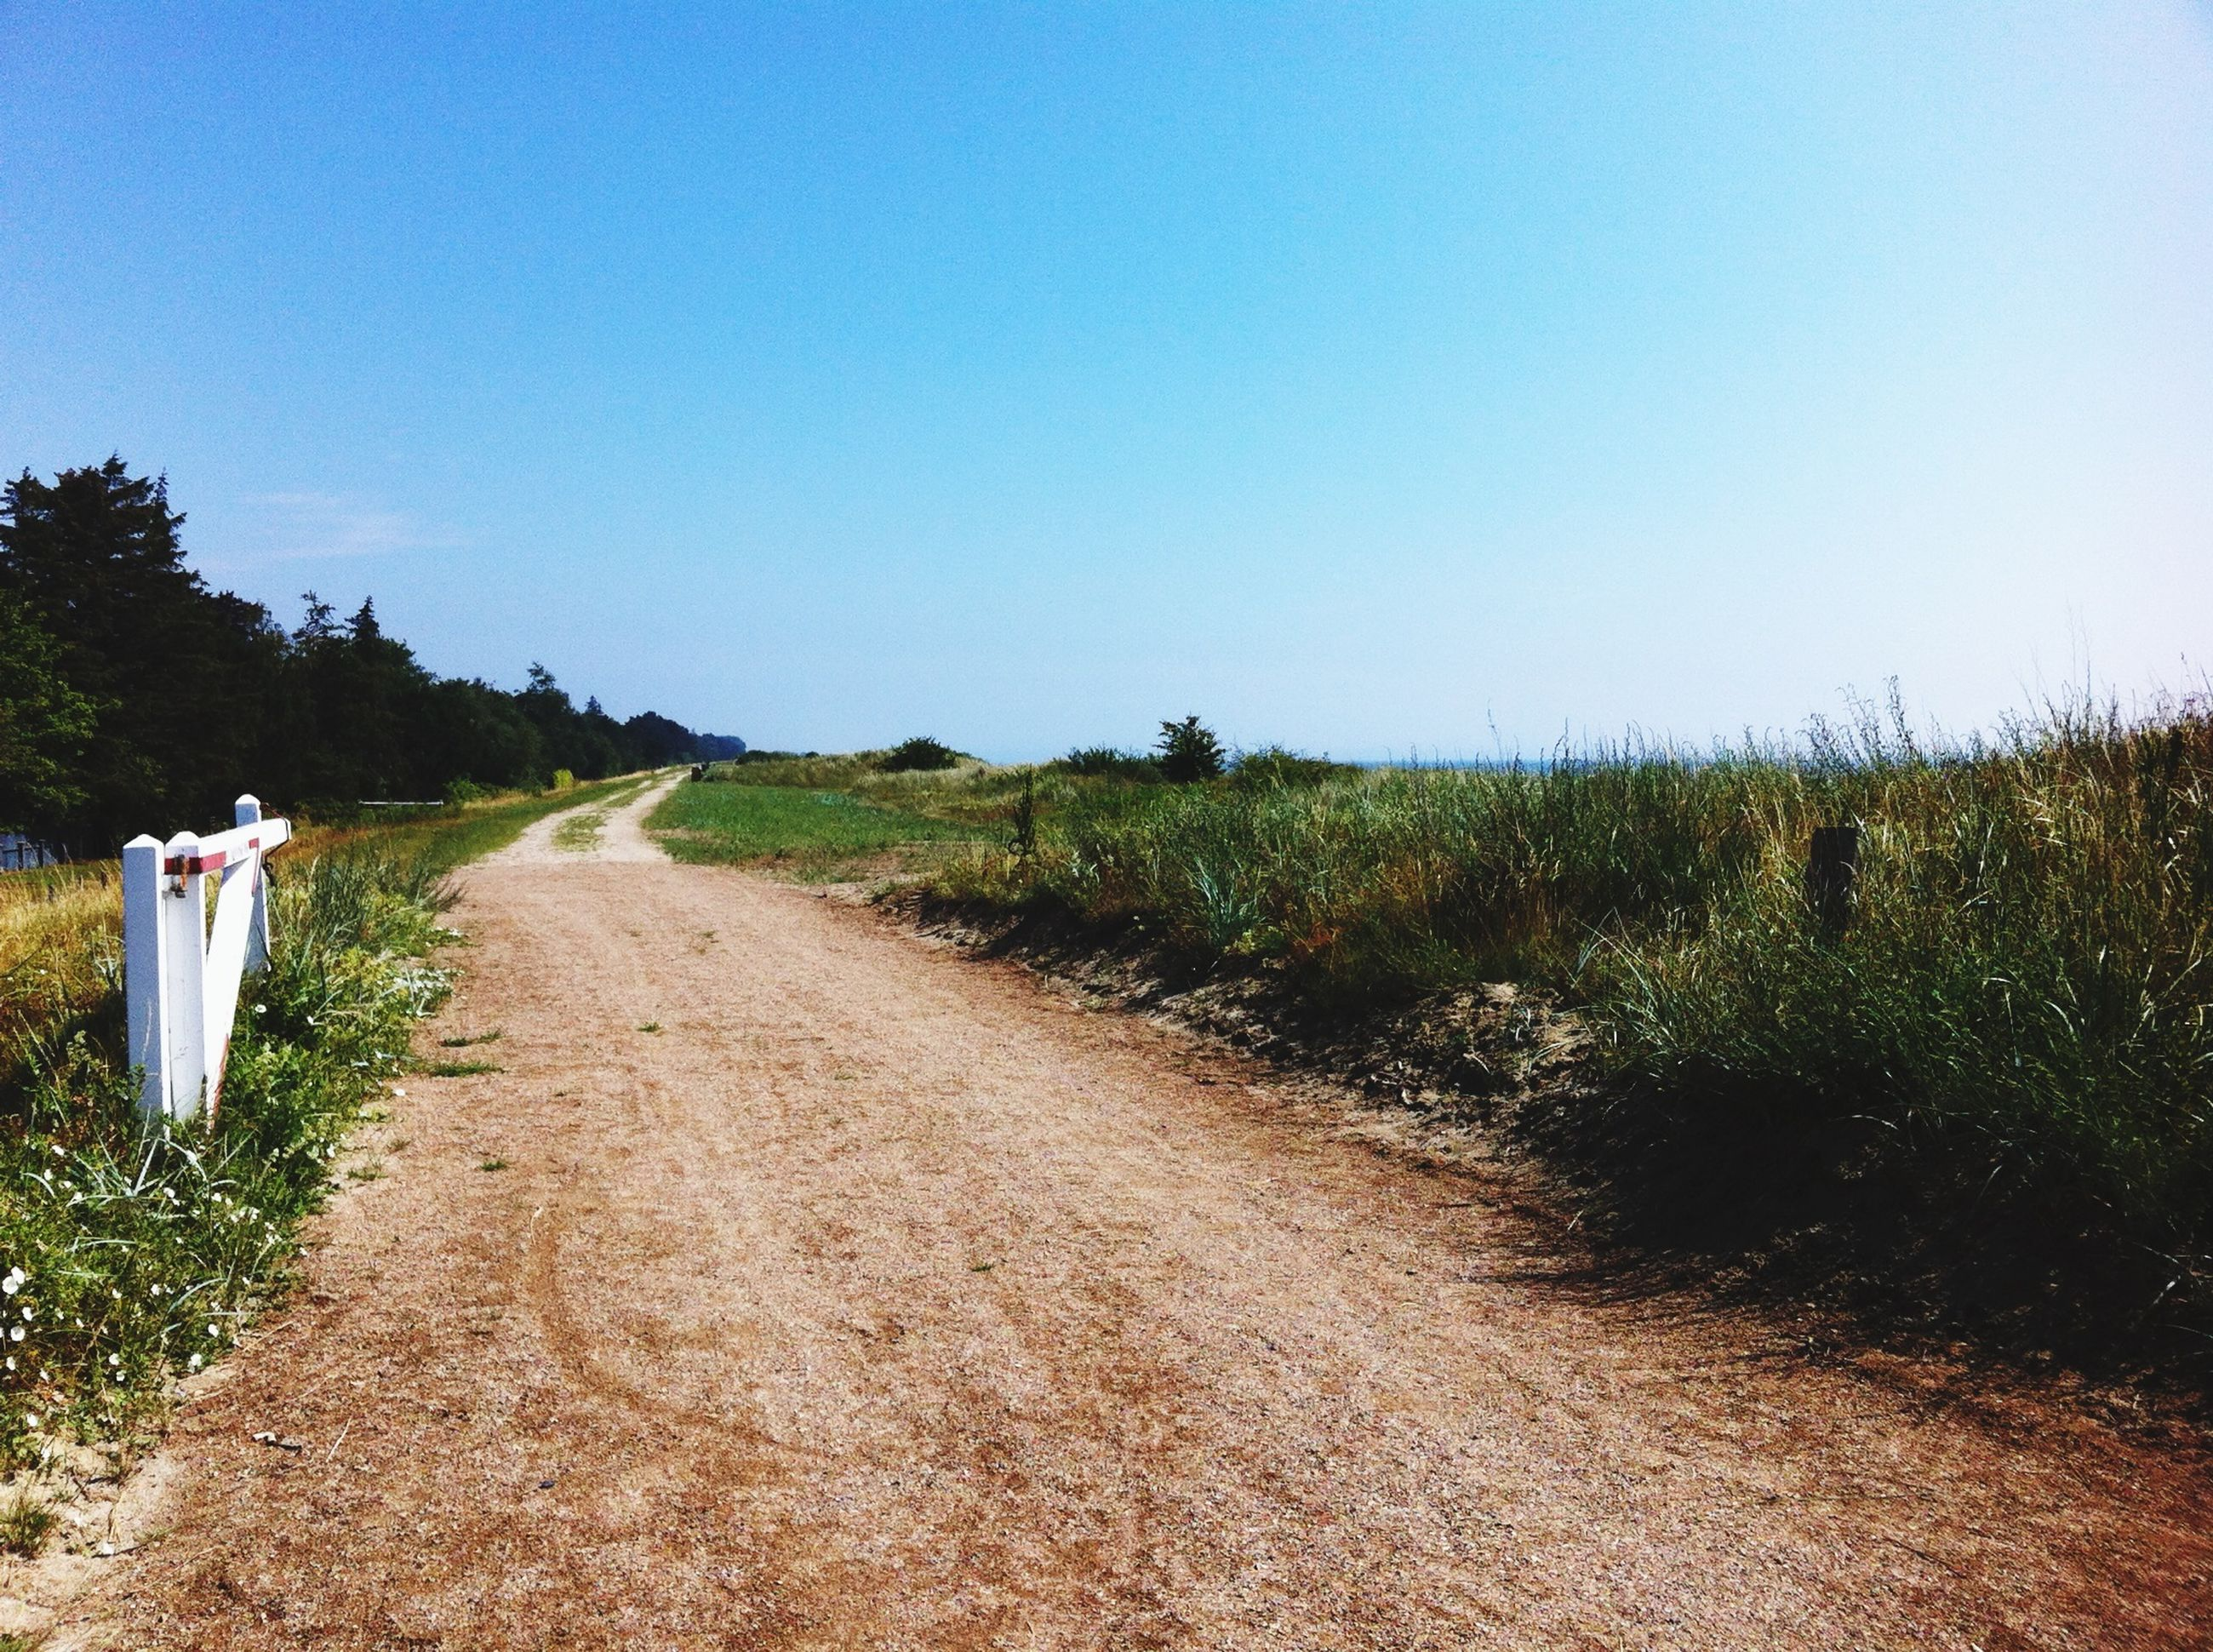 clear sky, copy space, grass, the way forward, tranquility, tranquil scene, landscape, field, blue, dirt road, nature, tree, beauty in nature, growth, scenics, diminishing perspective, road, plant, non-urban scene, grassy